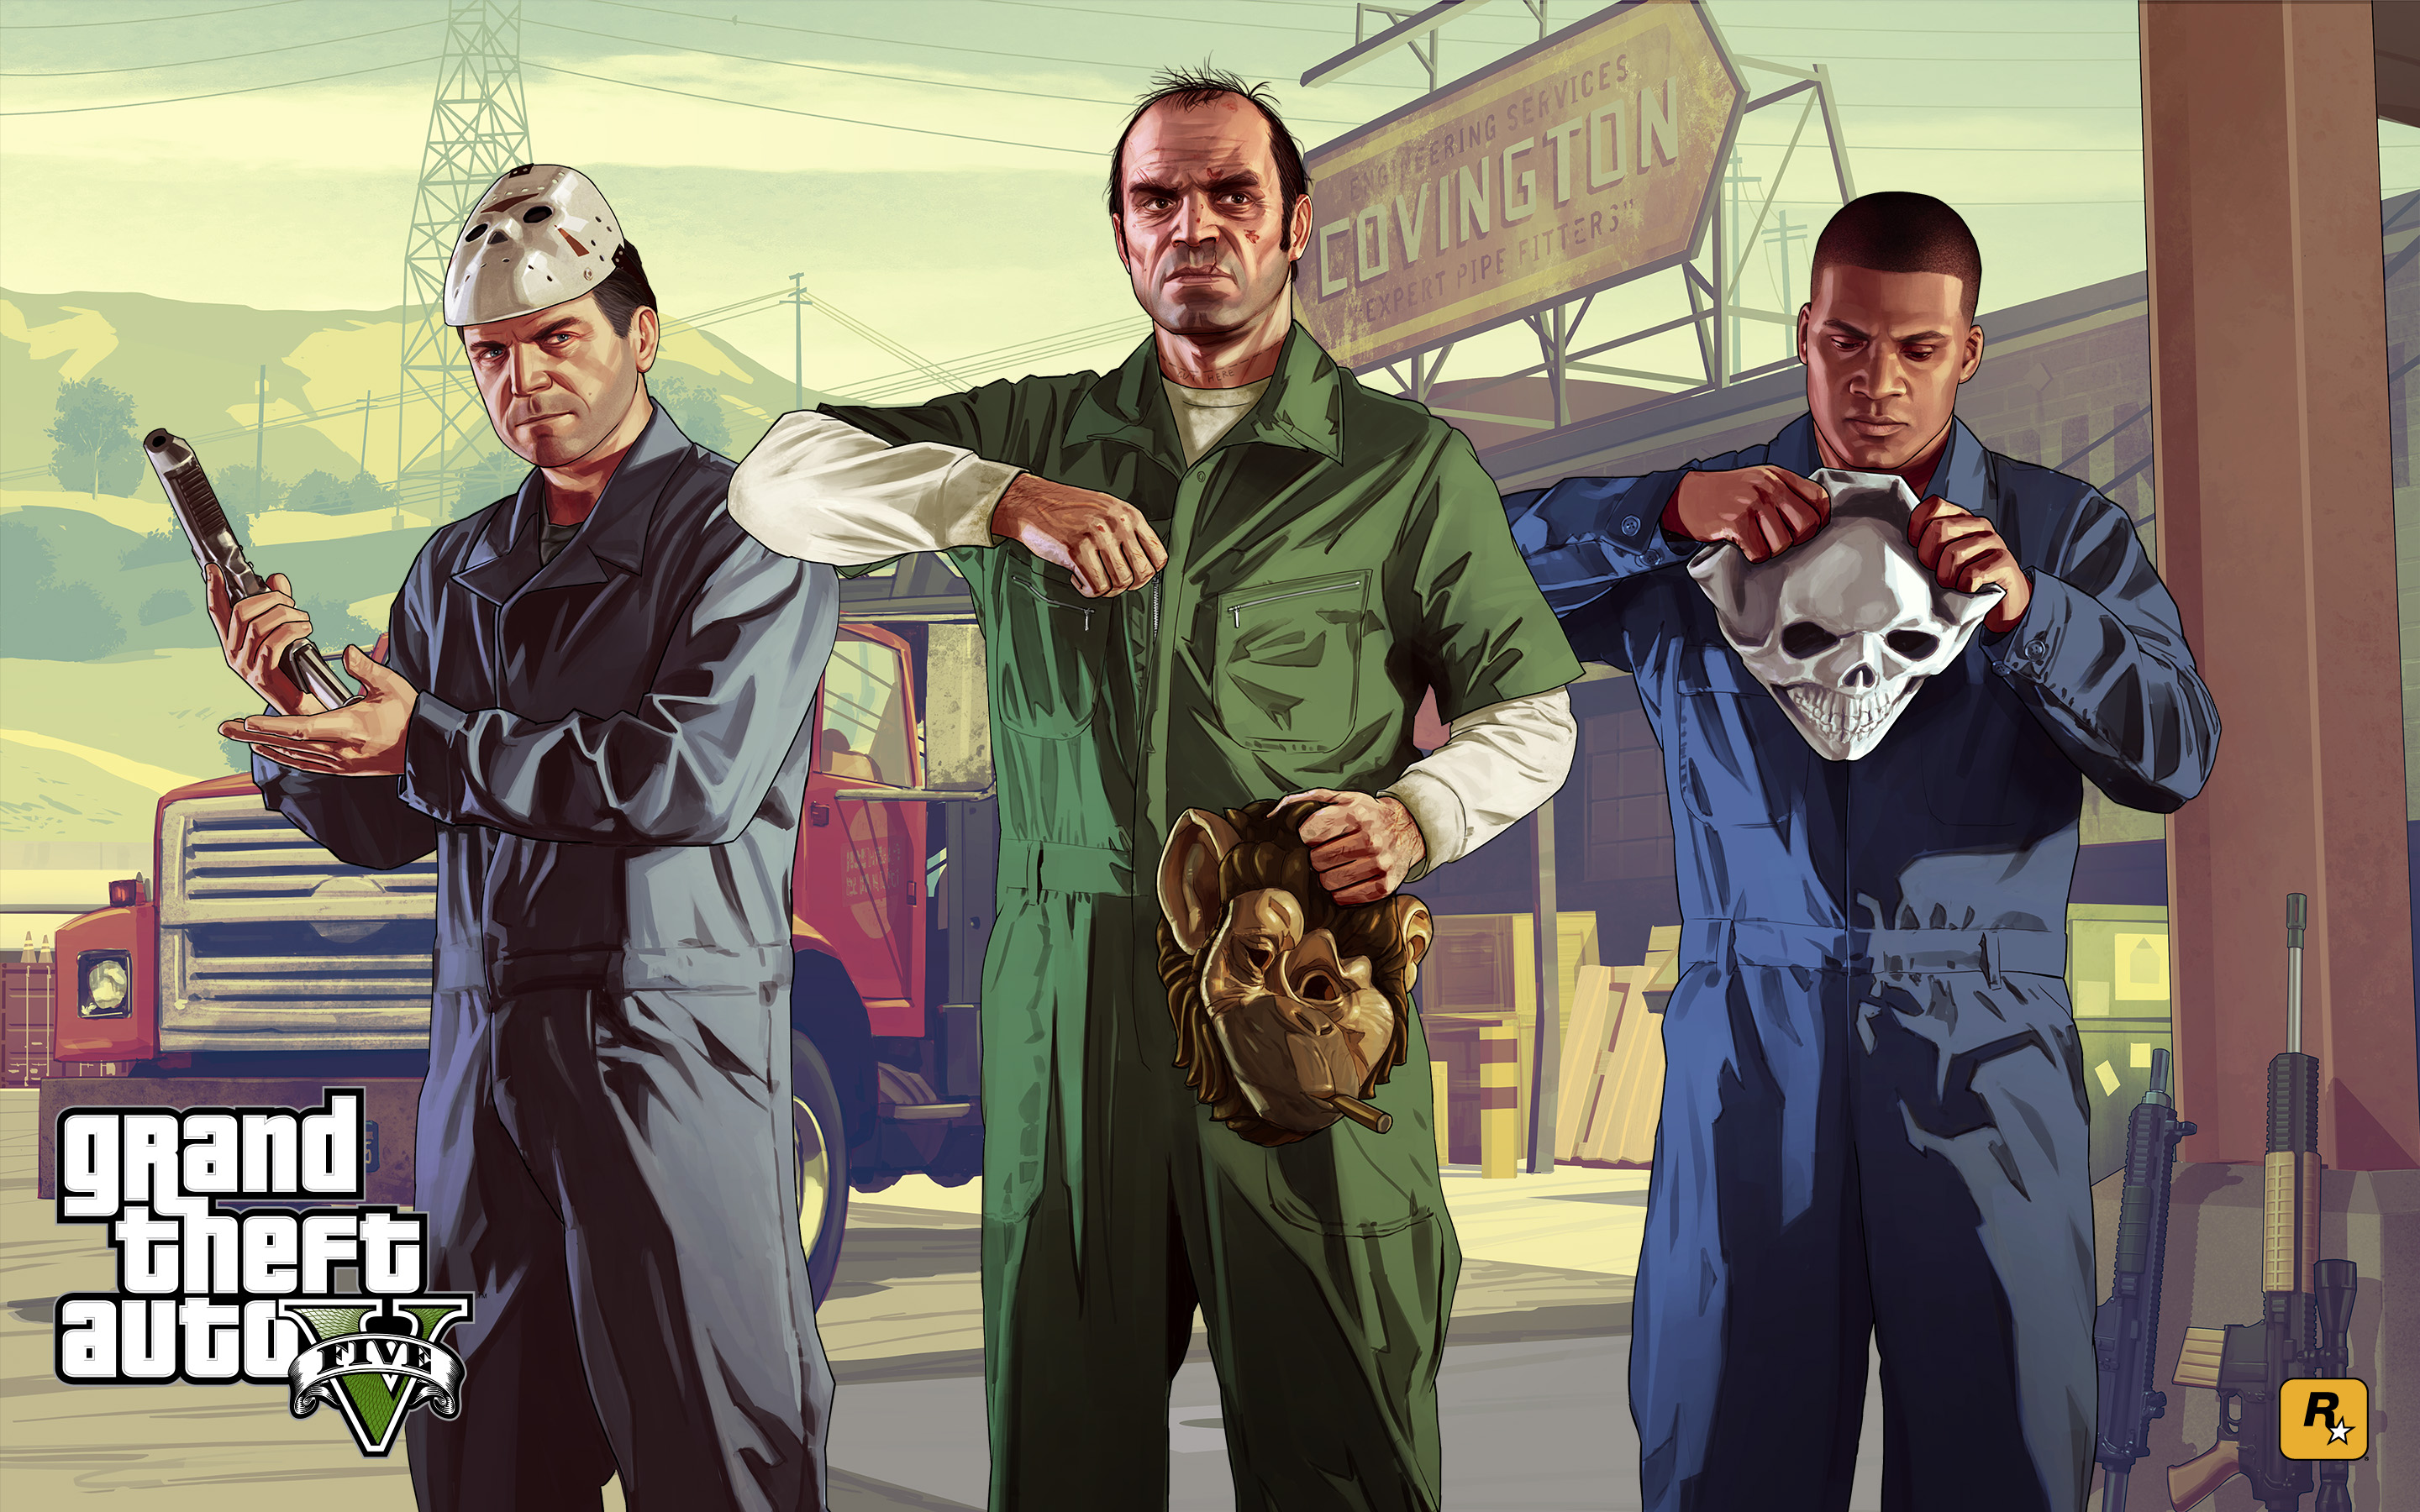 Franklin Clinton Gta V Images Blitzplay 2880x1800 HD Wallpaper And Background Photos